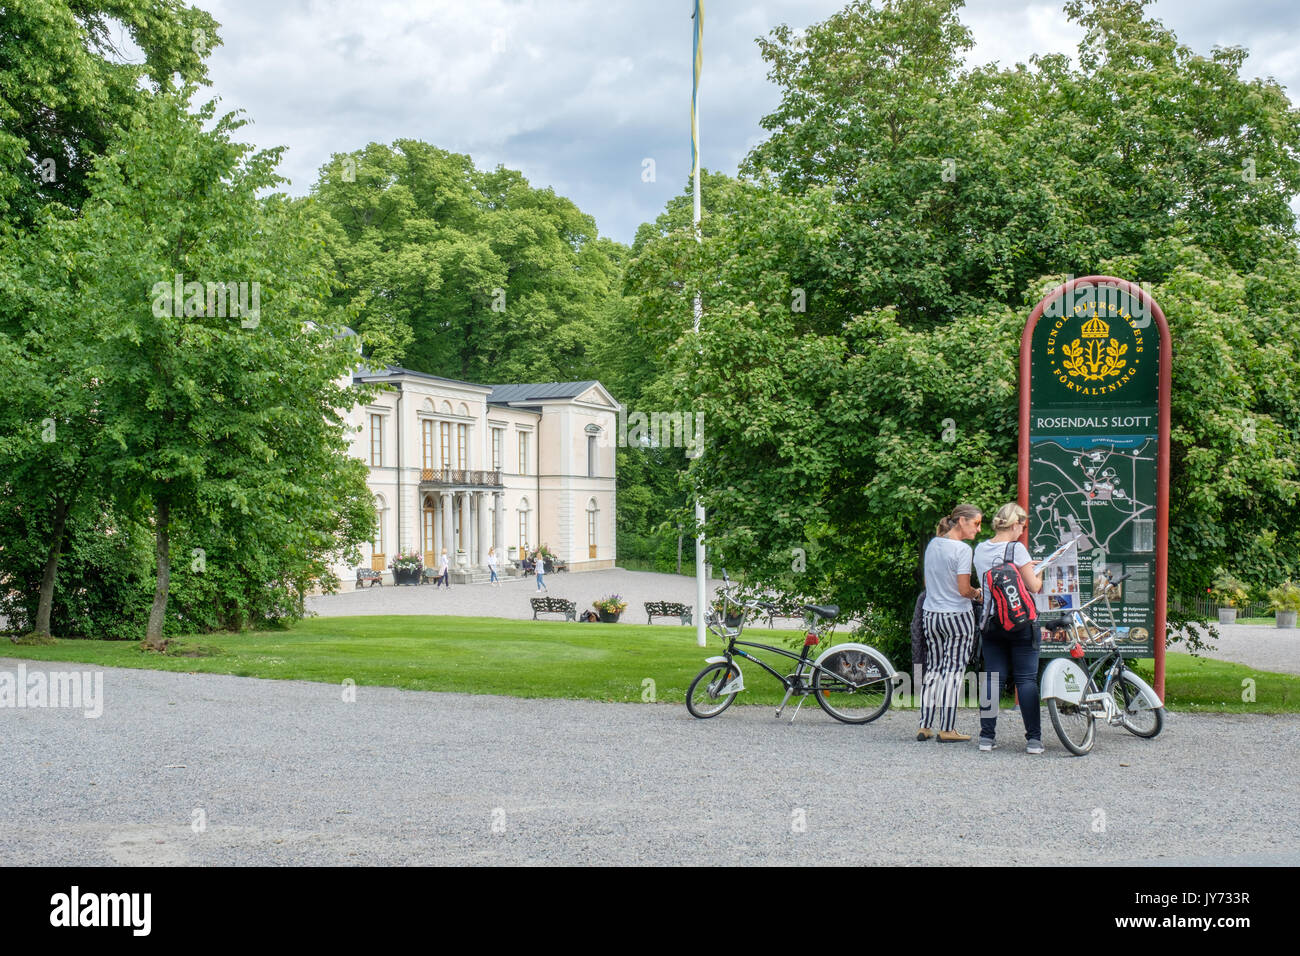 Rosendal palace in Stockholm. Rosendal palace located in the recreational area of Djurgarden is one of 11 Royal palaces in Sweden. - Stock Image